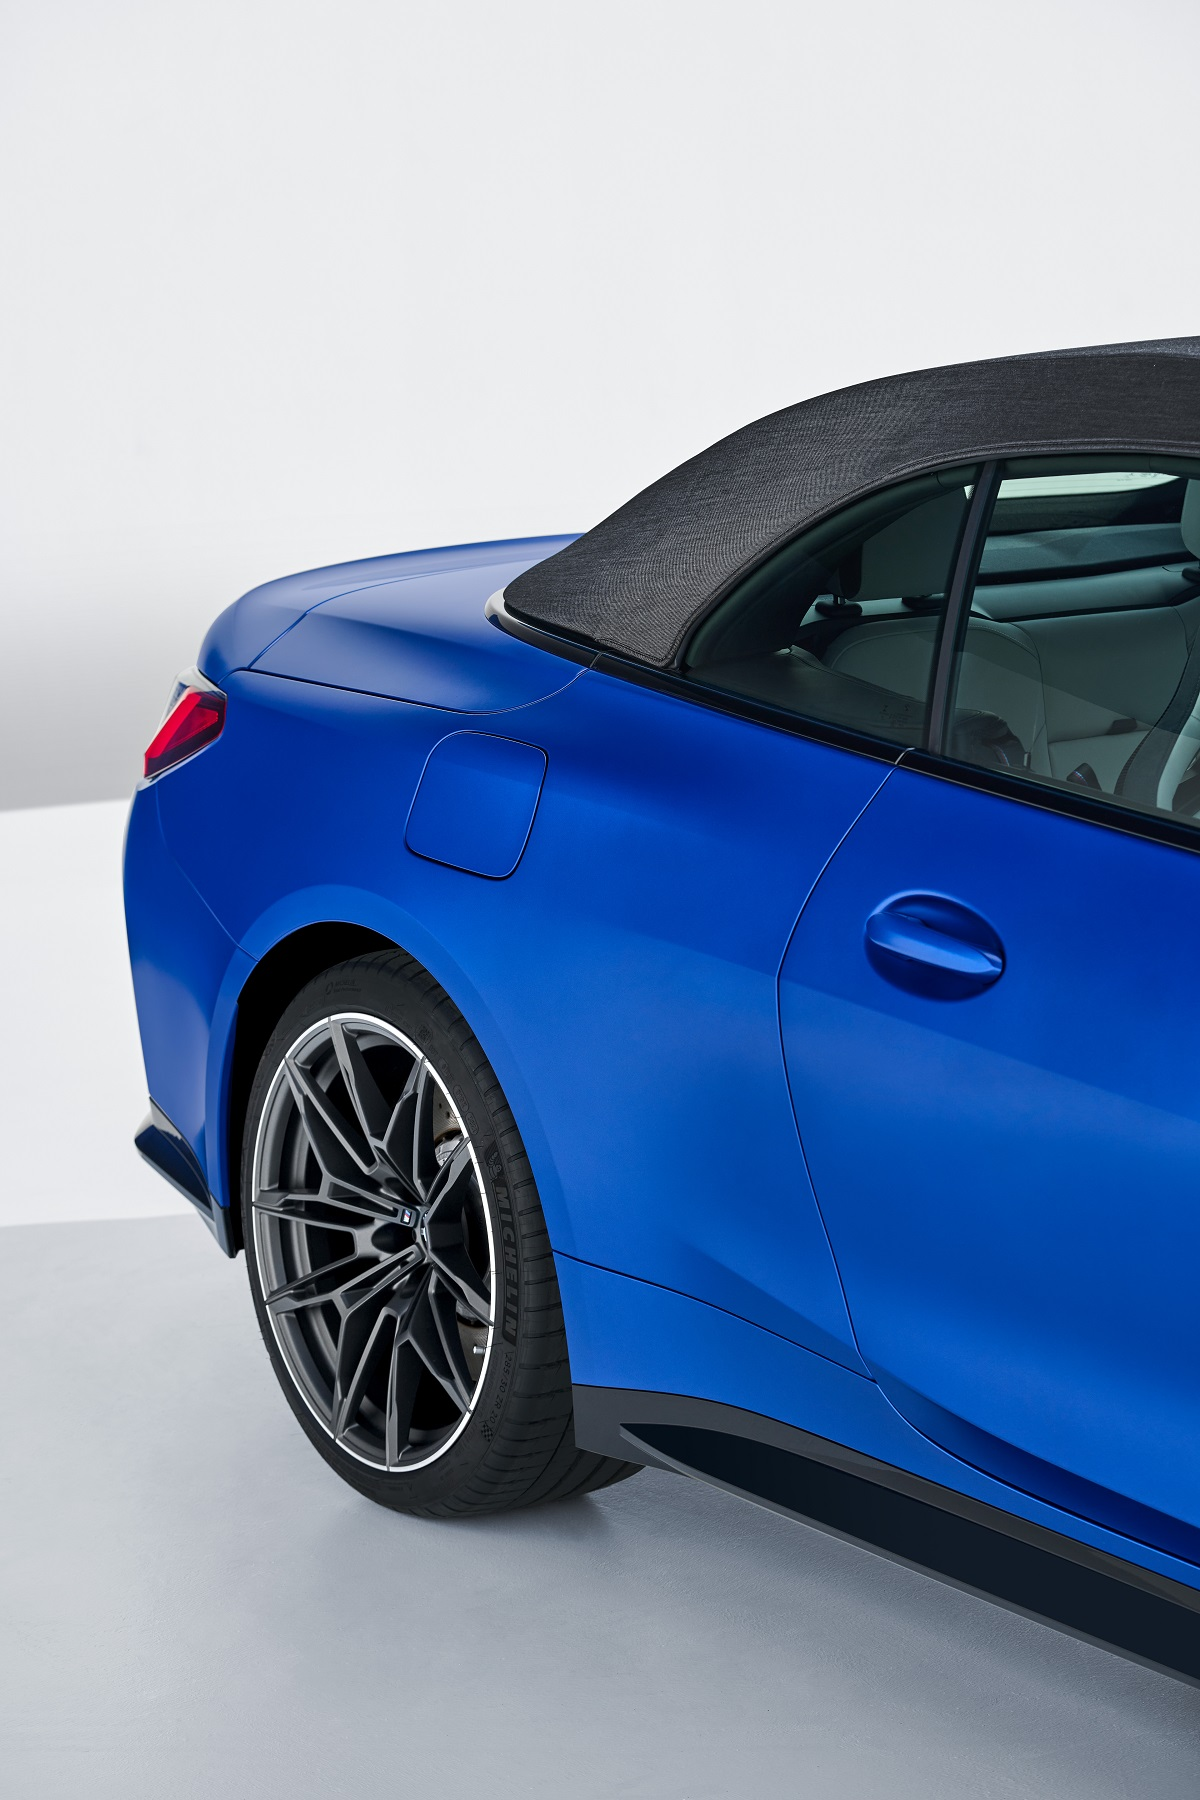 P90420242_highRes_the-new-bmw-m4-compe.jpg